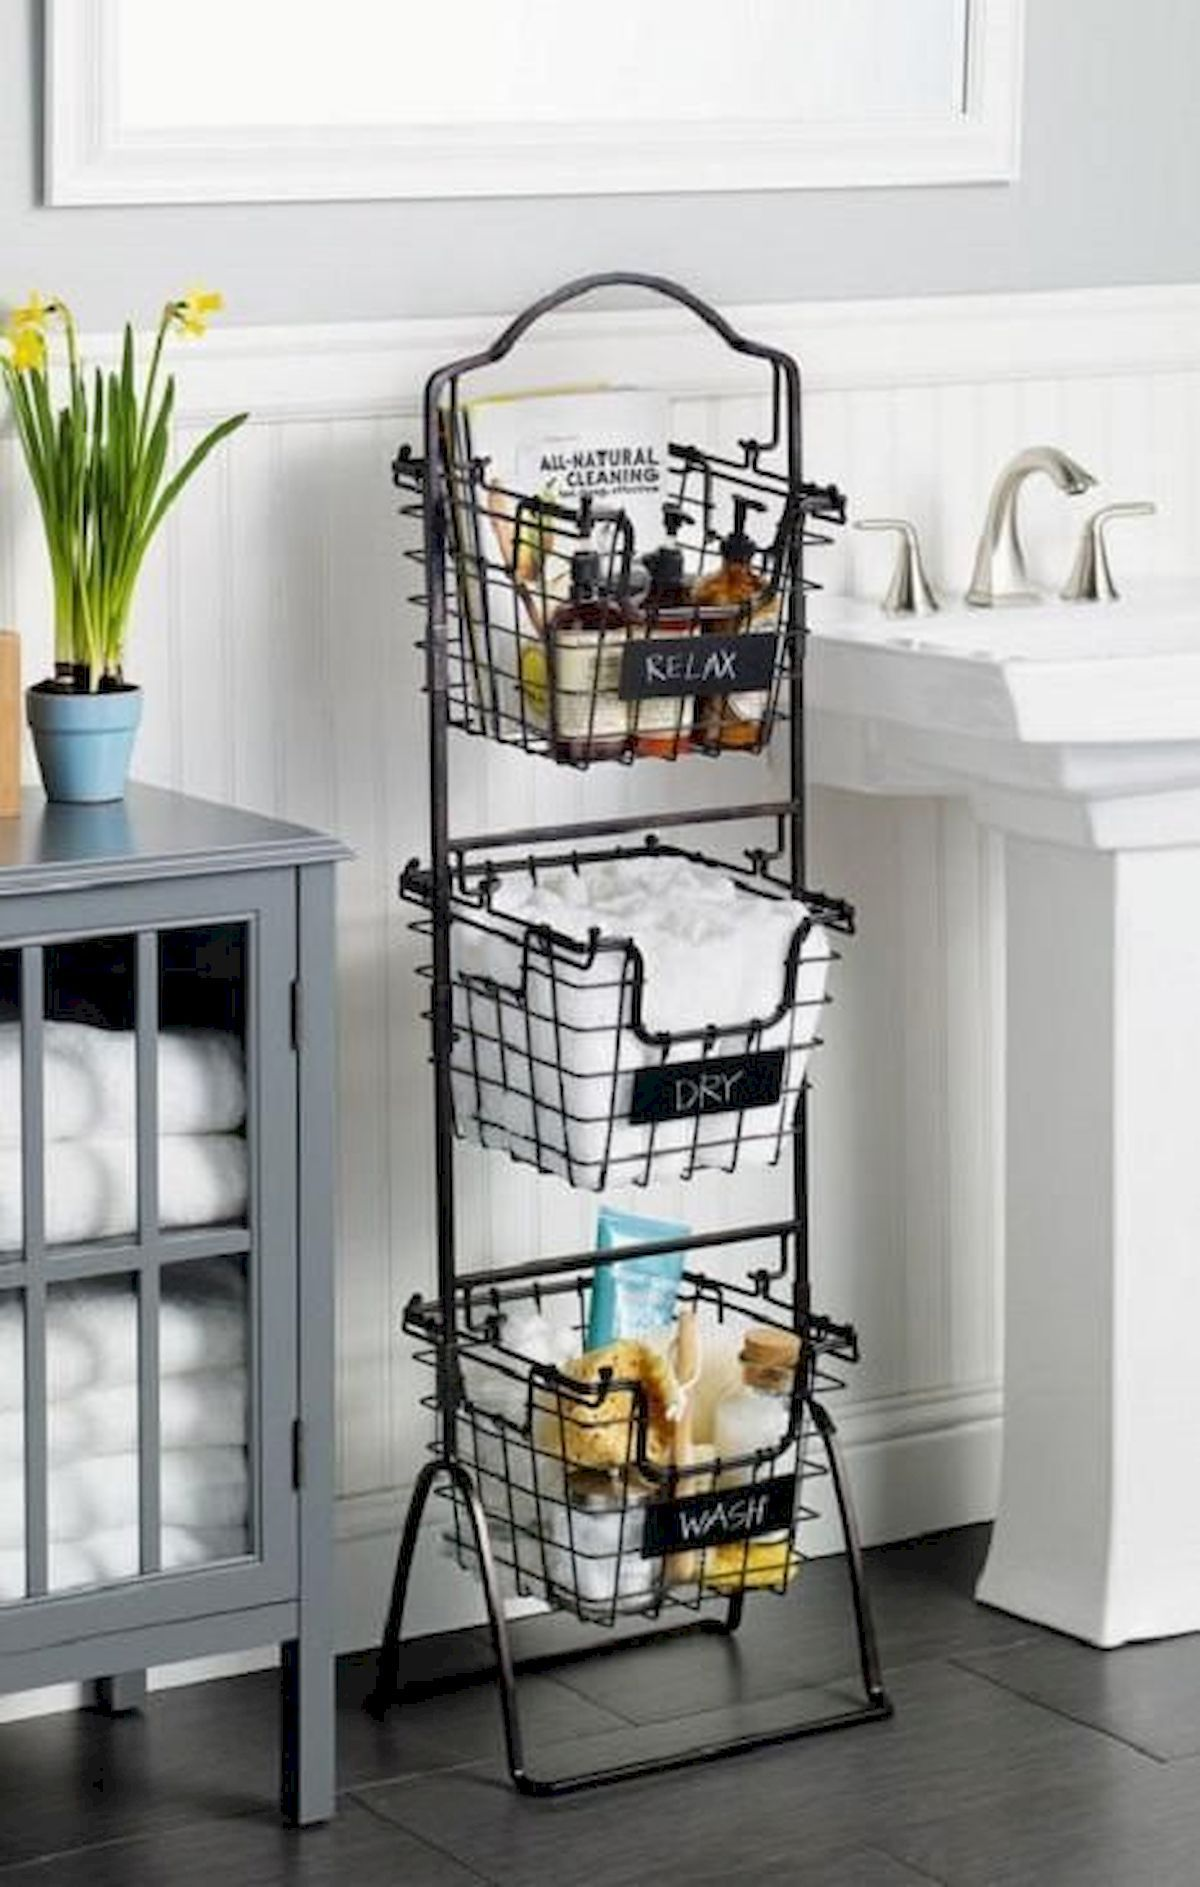 Decorating Small Open Floor Plan Living Room And Kitchen: 25 Creative Bathroom Storage Ideas For Small Spaces